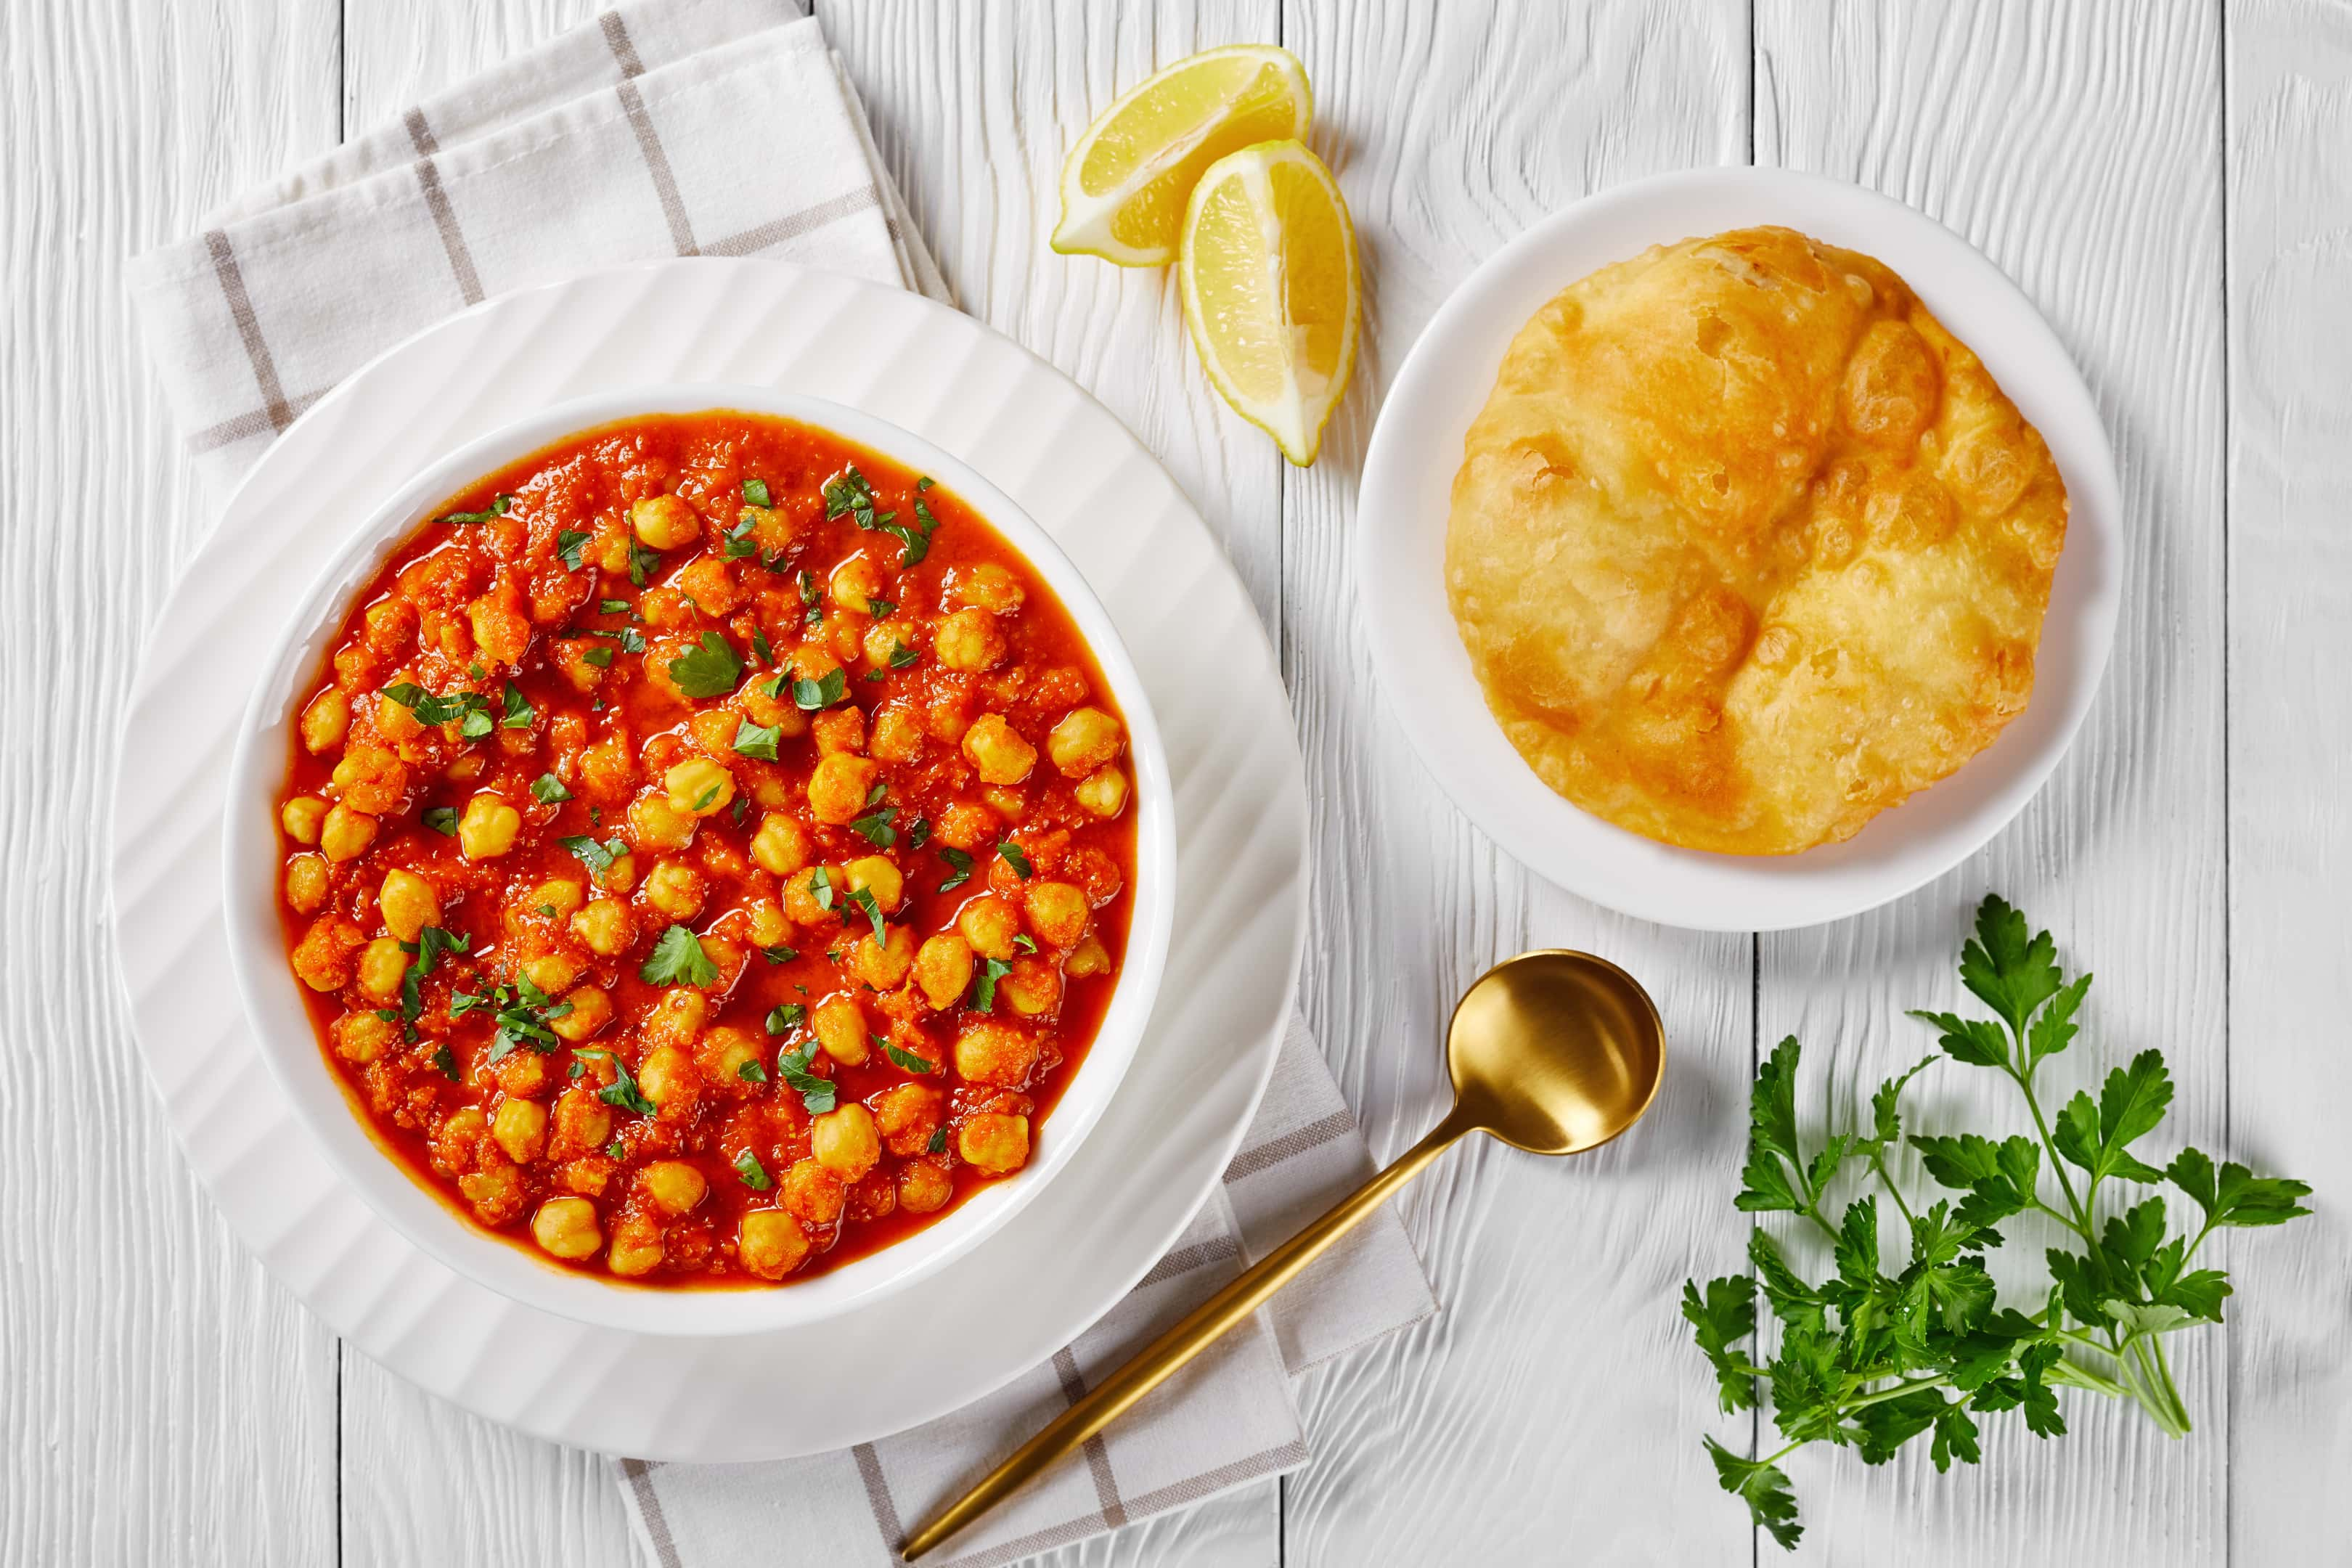 Chana masala chickpea curry with spices and tomato sauce served with indian fried bread bhatura